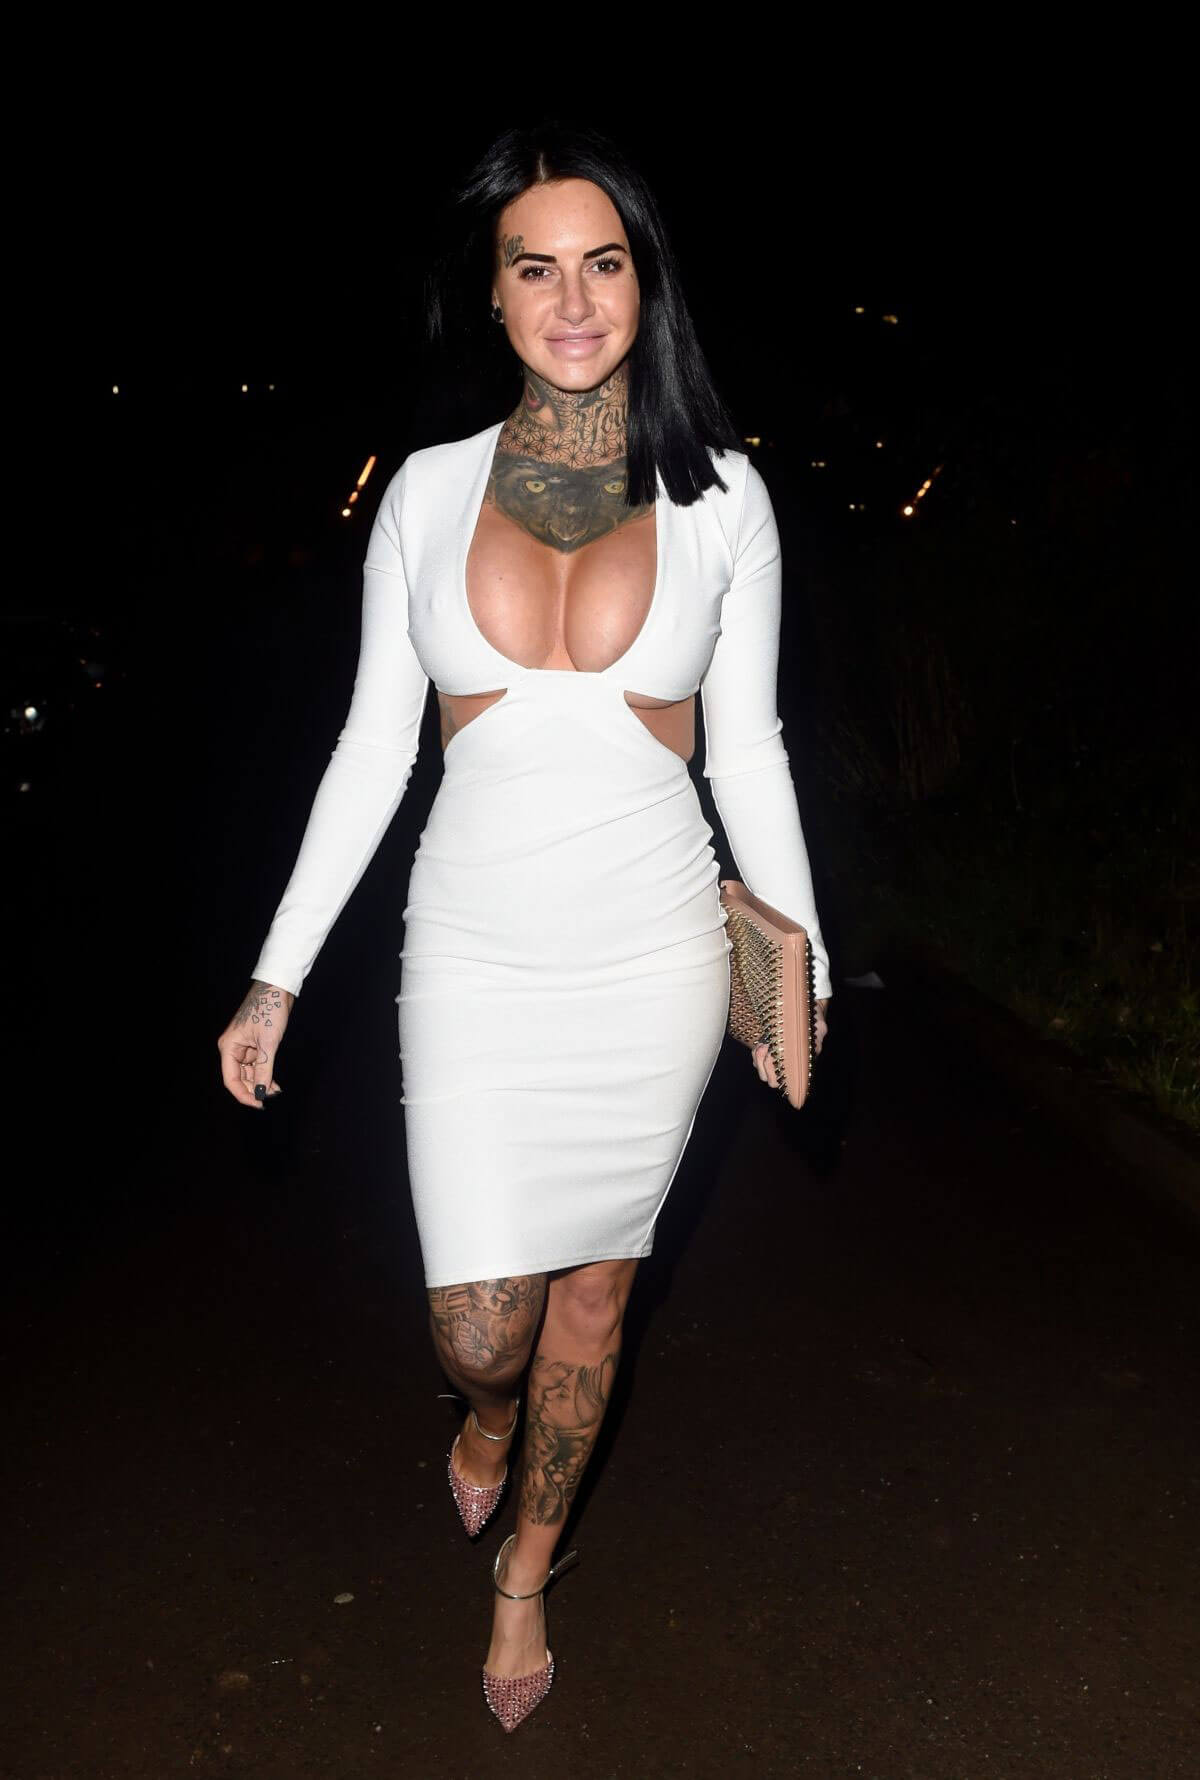 Cleavage Jemma Lucy nude photos 2019